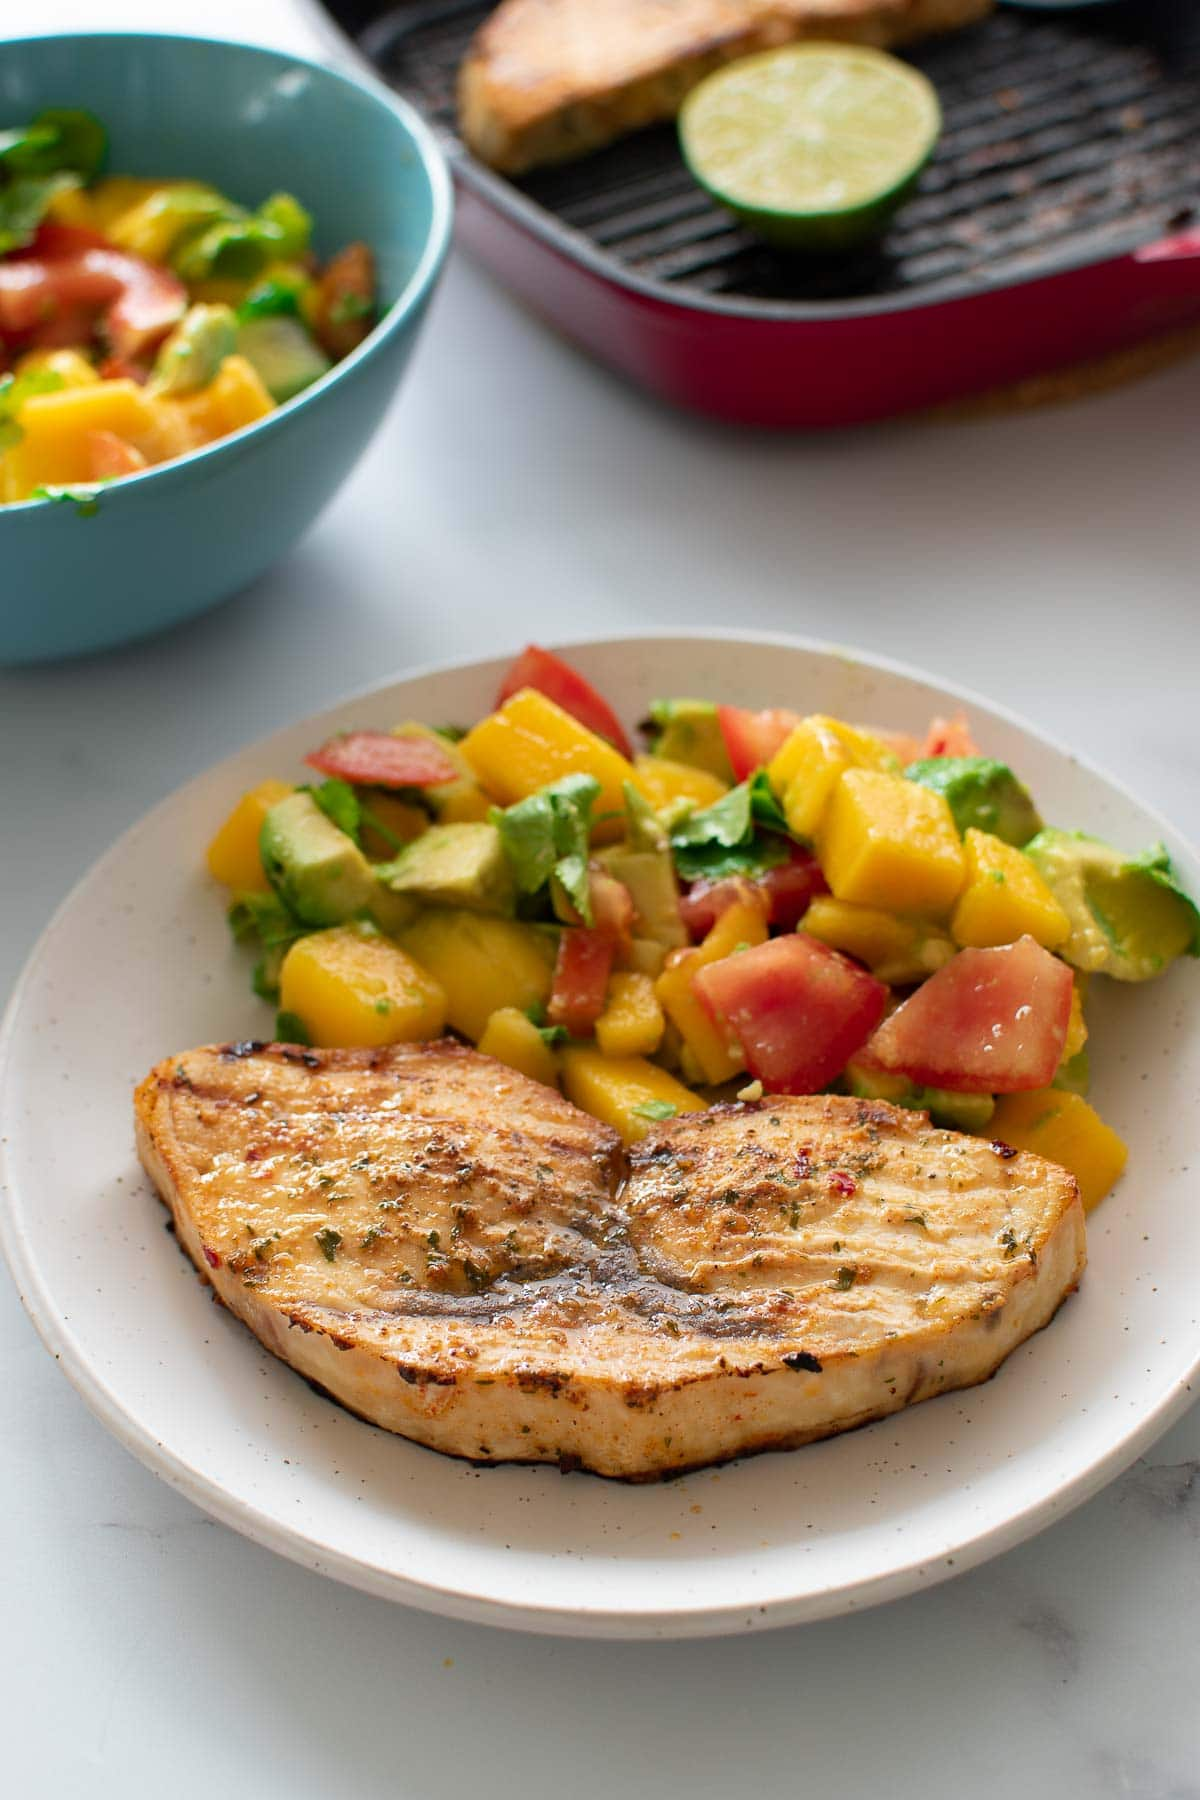 Swordfish served with salad, with a baking dish in the background.